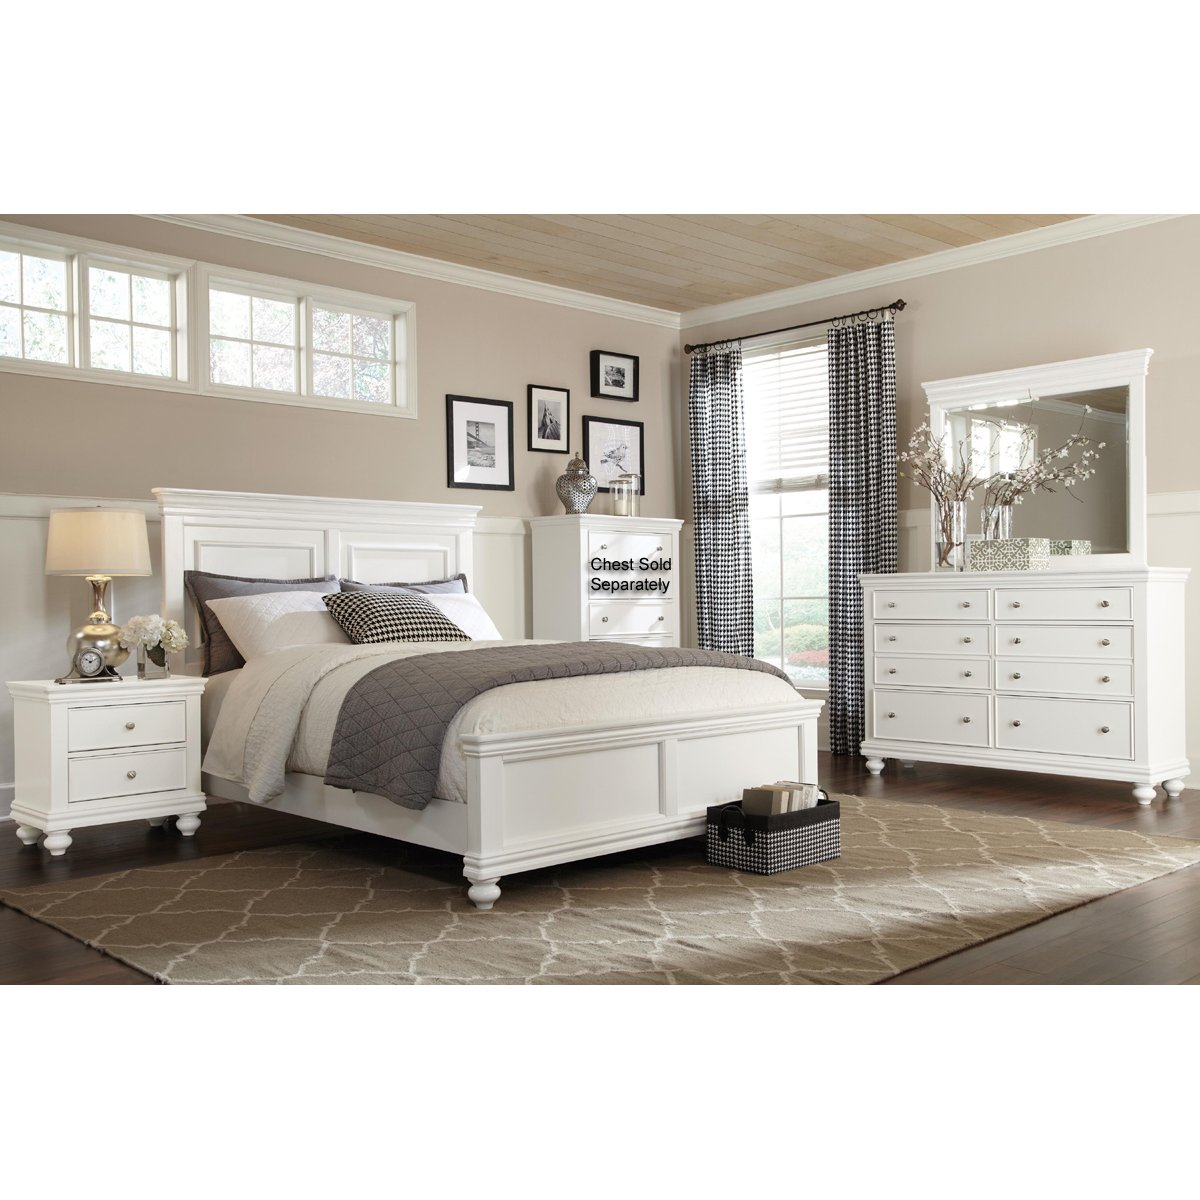 Essex 6 piece queen bedroom set for Furniture queen bedroom sets